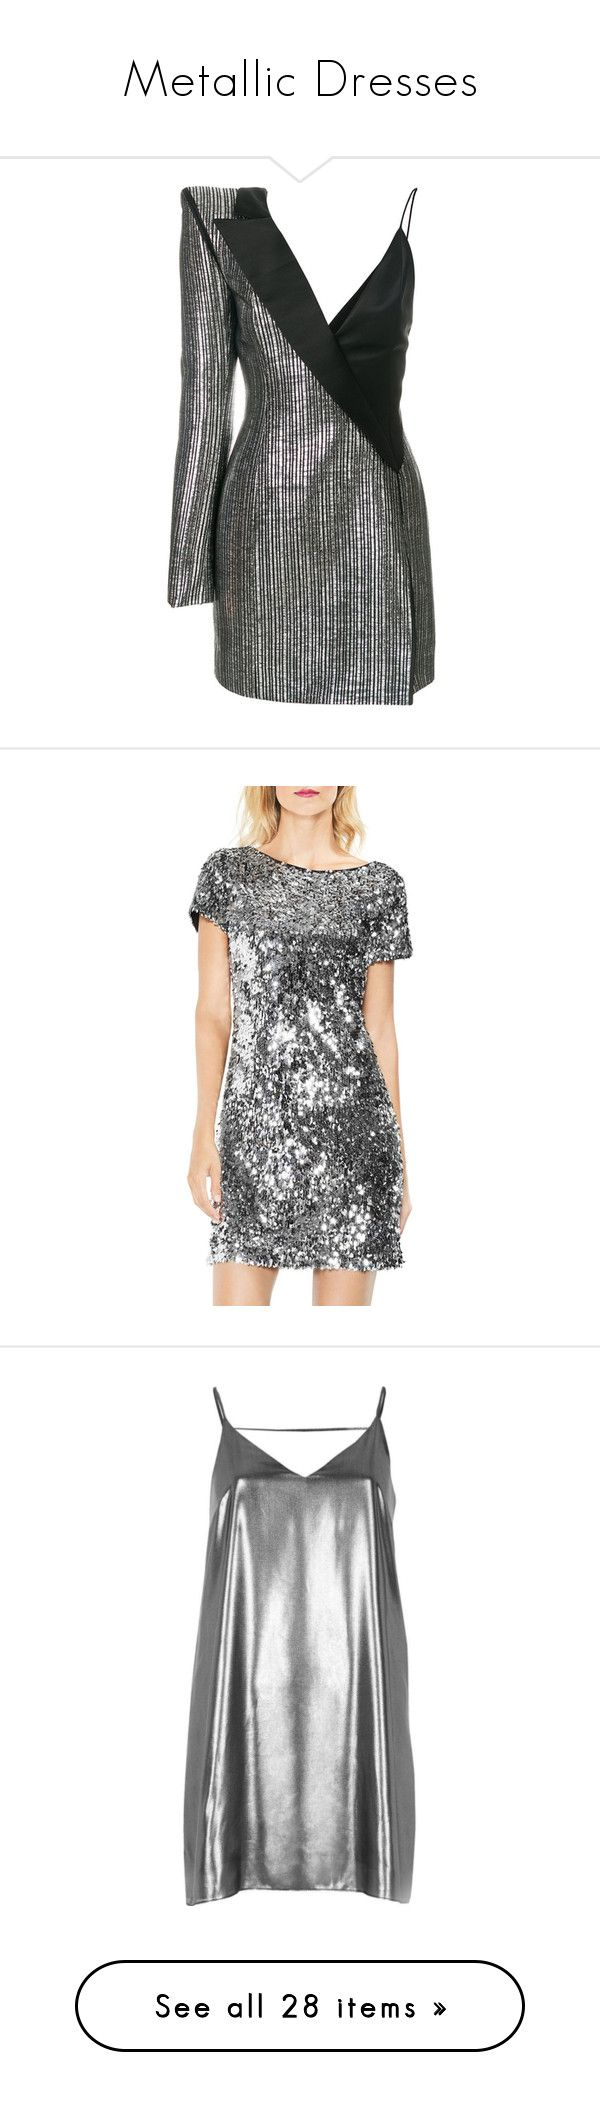 """""""Metallic Dresses"""" by tiana25 ❤ liked on Polyvore featuring dresses, metallic, thierry mugler dress, one shoulder metallic dress, off one shoulder dress, metallic cocktail dress, one-sleeve dress, chrome, going out dresses and sequin party dresses"""